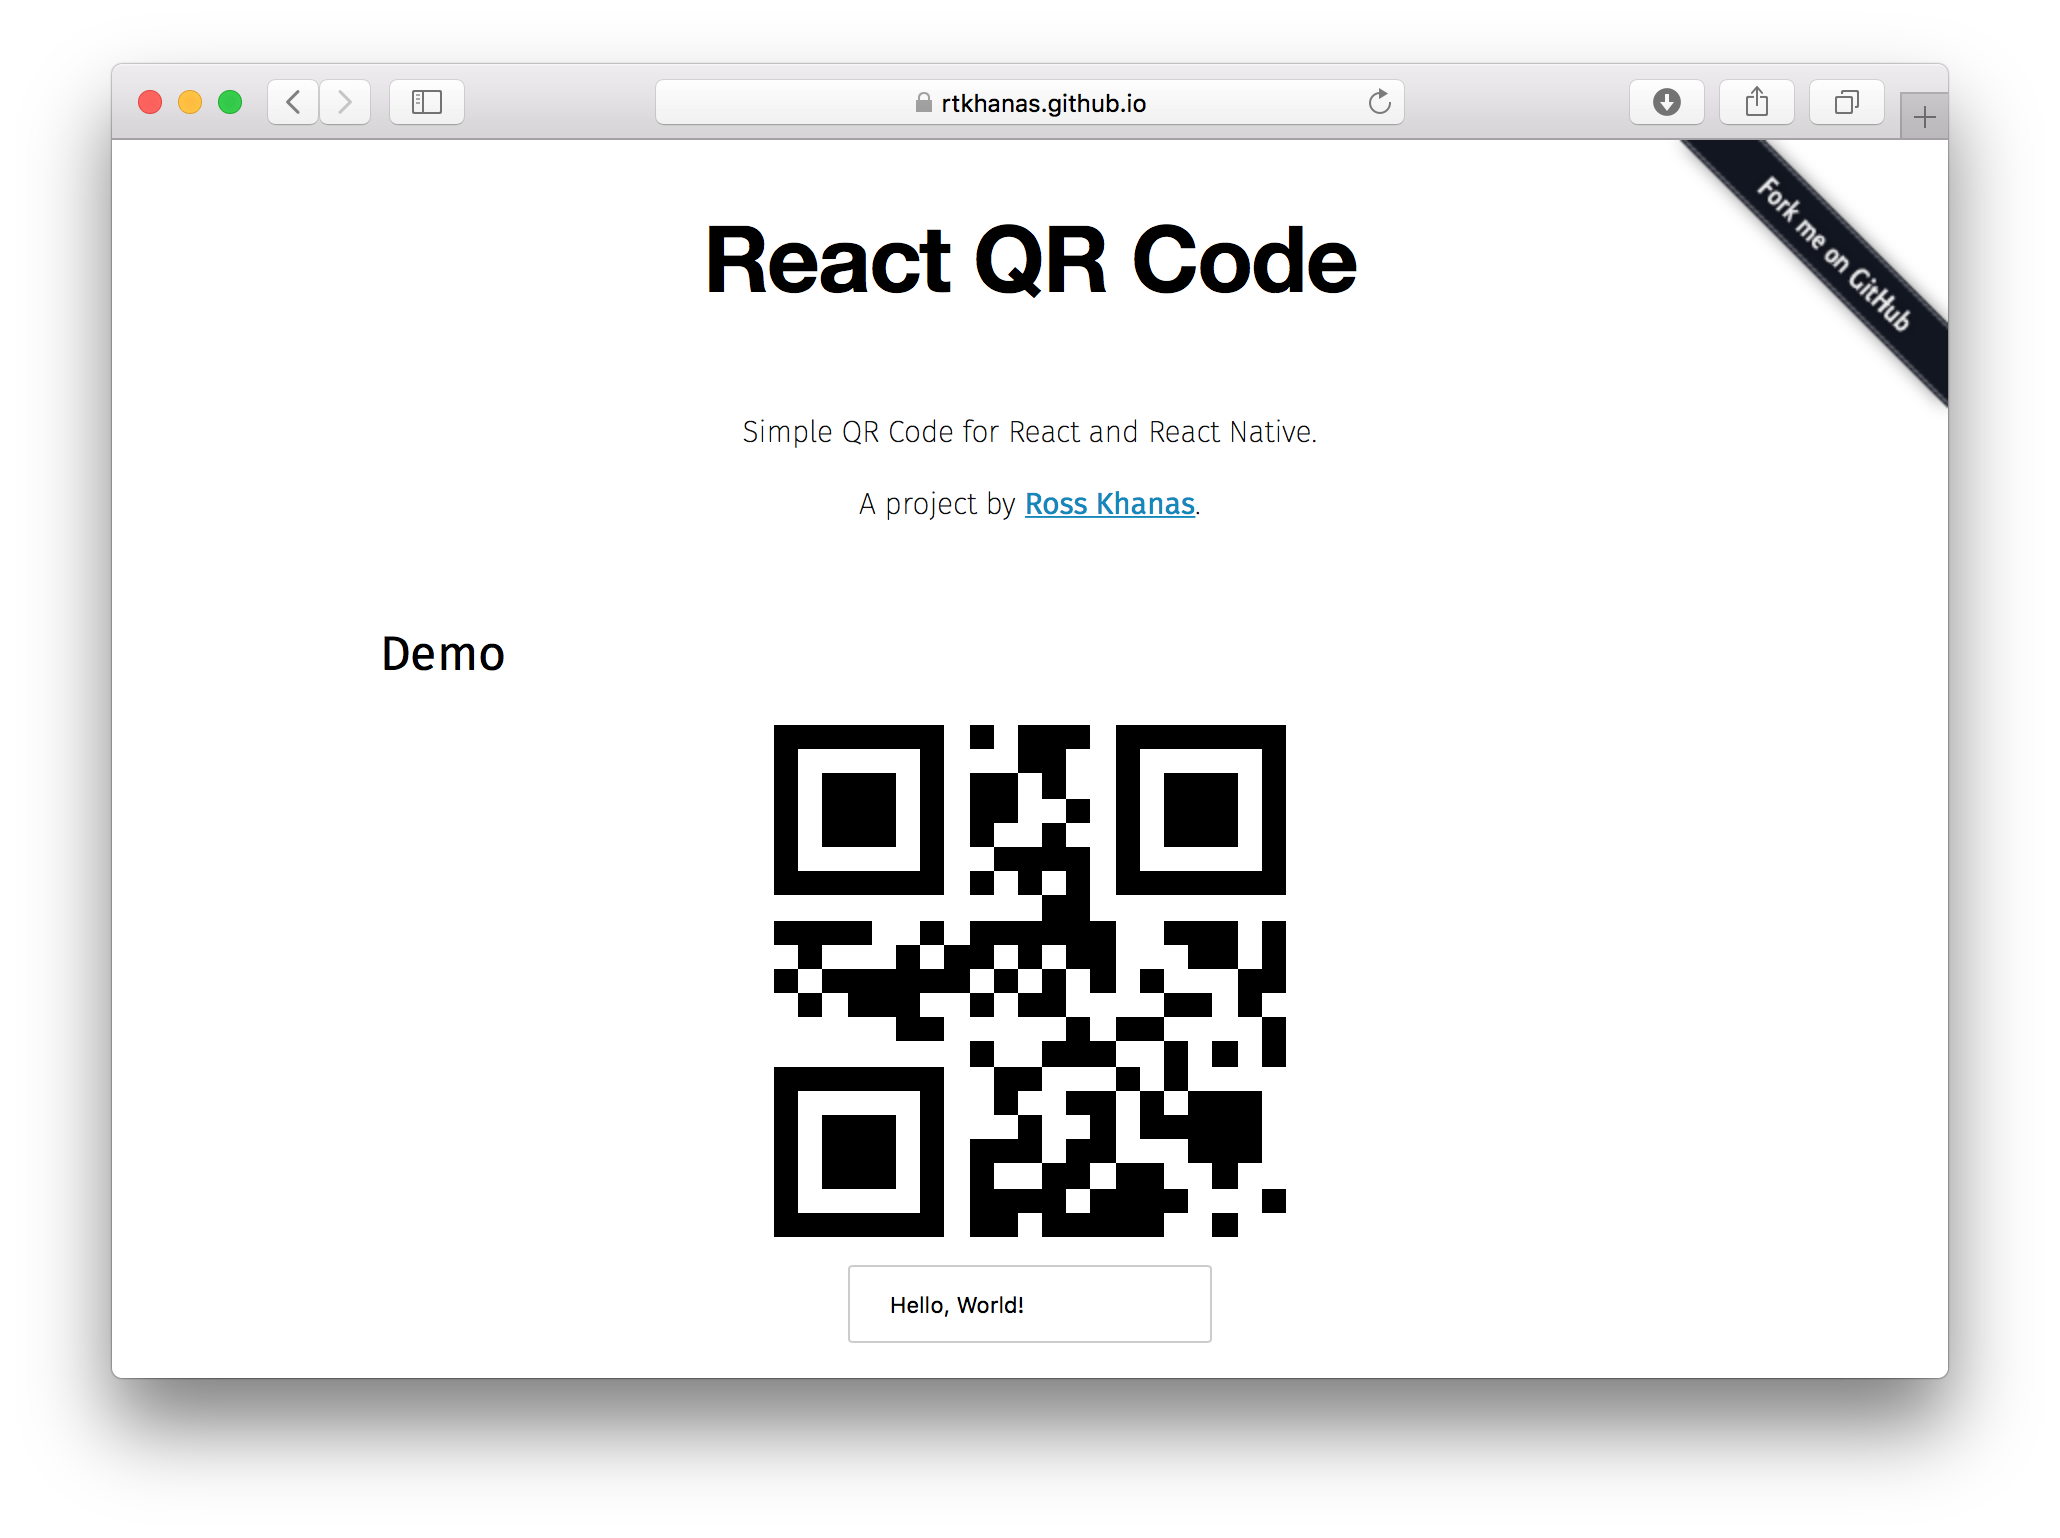 A QR code generator for React and React Native